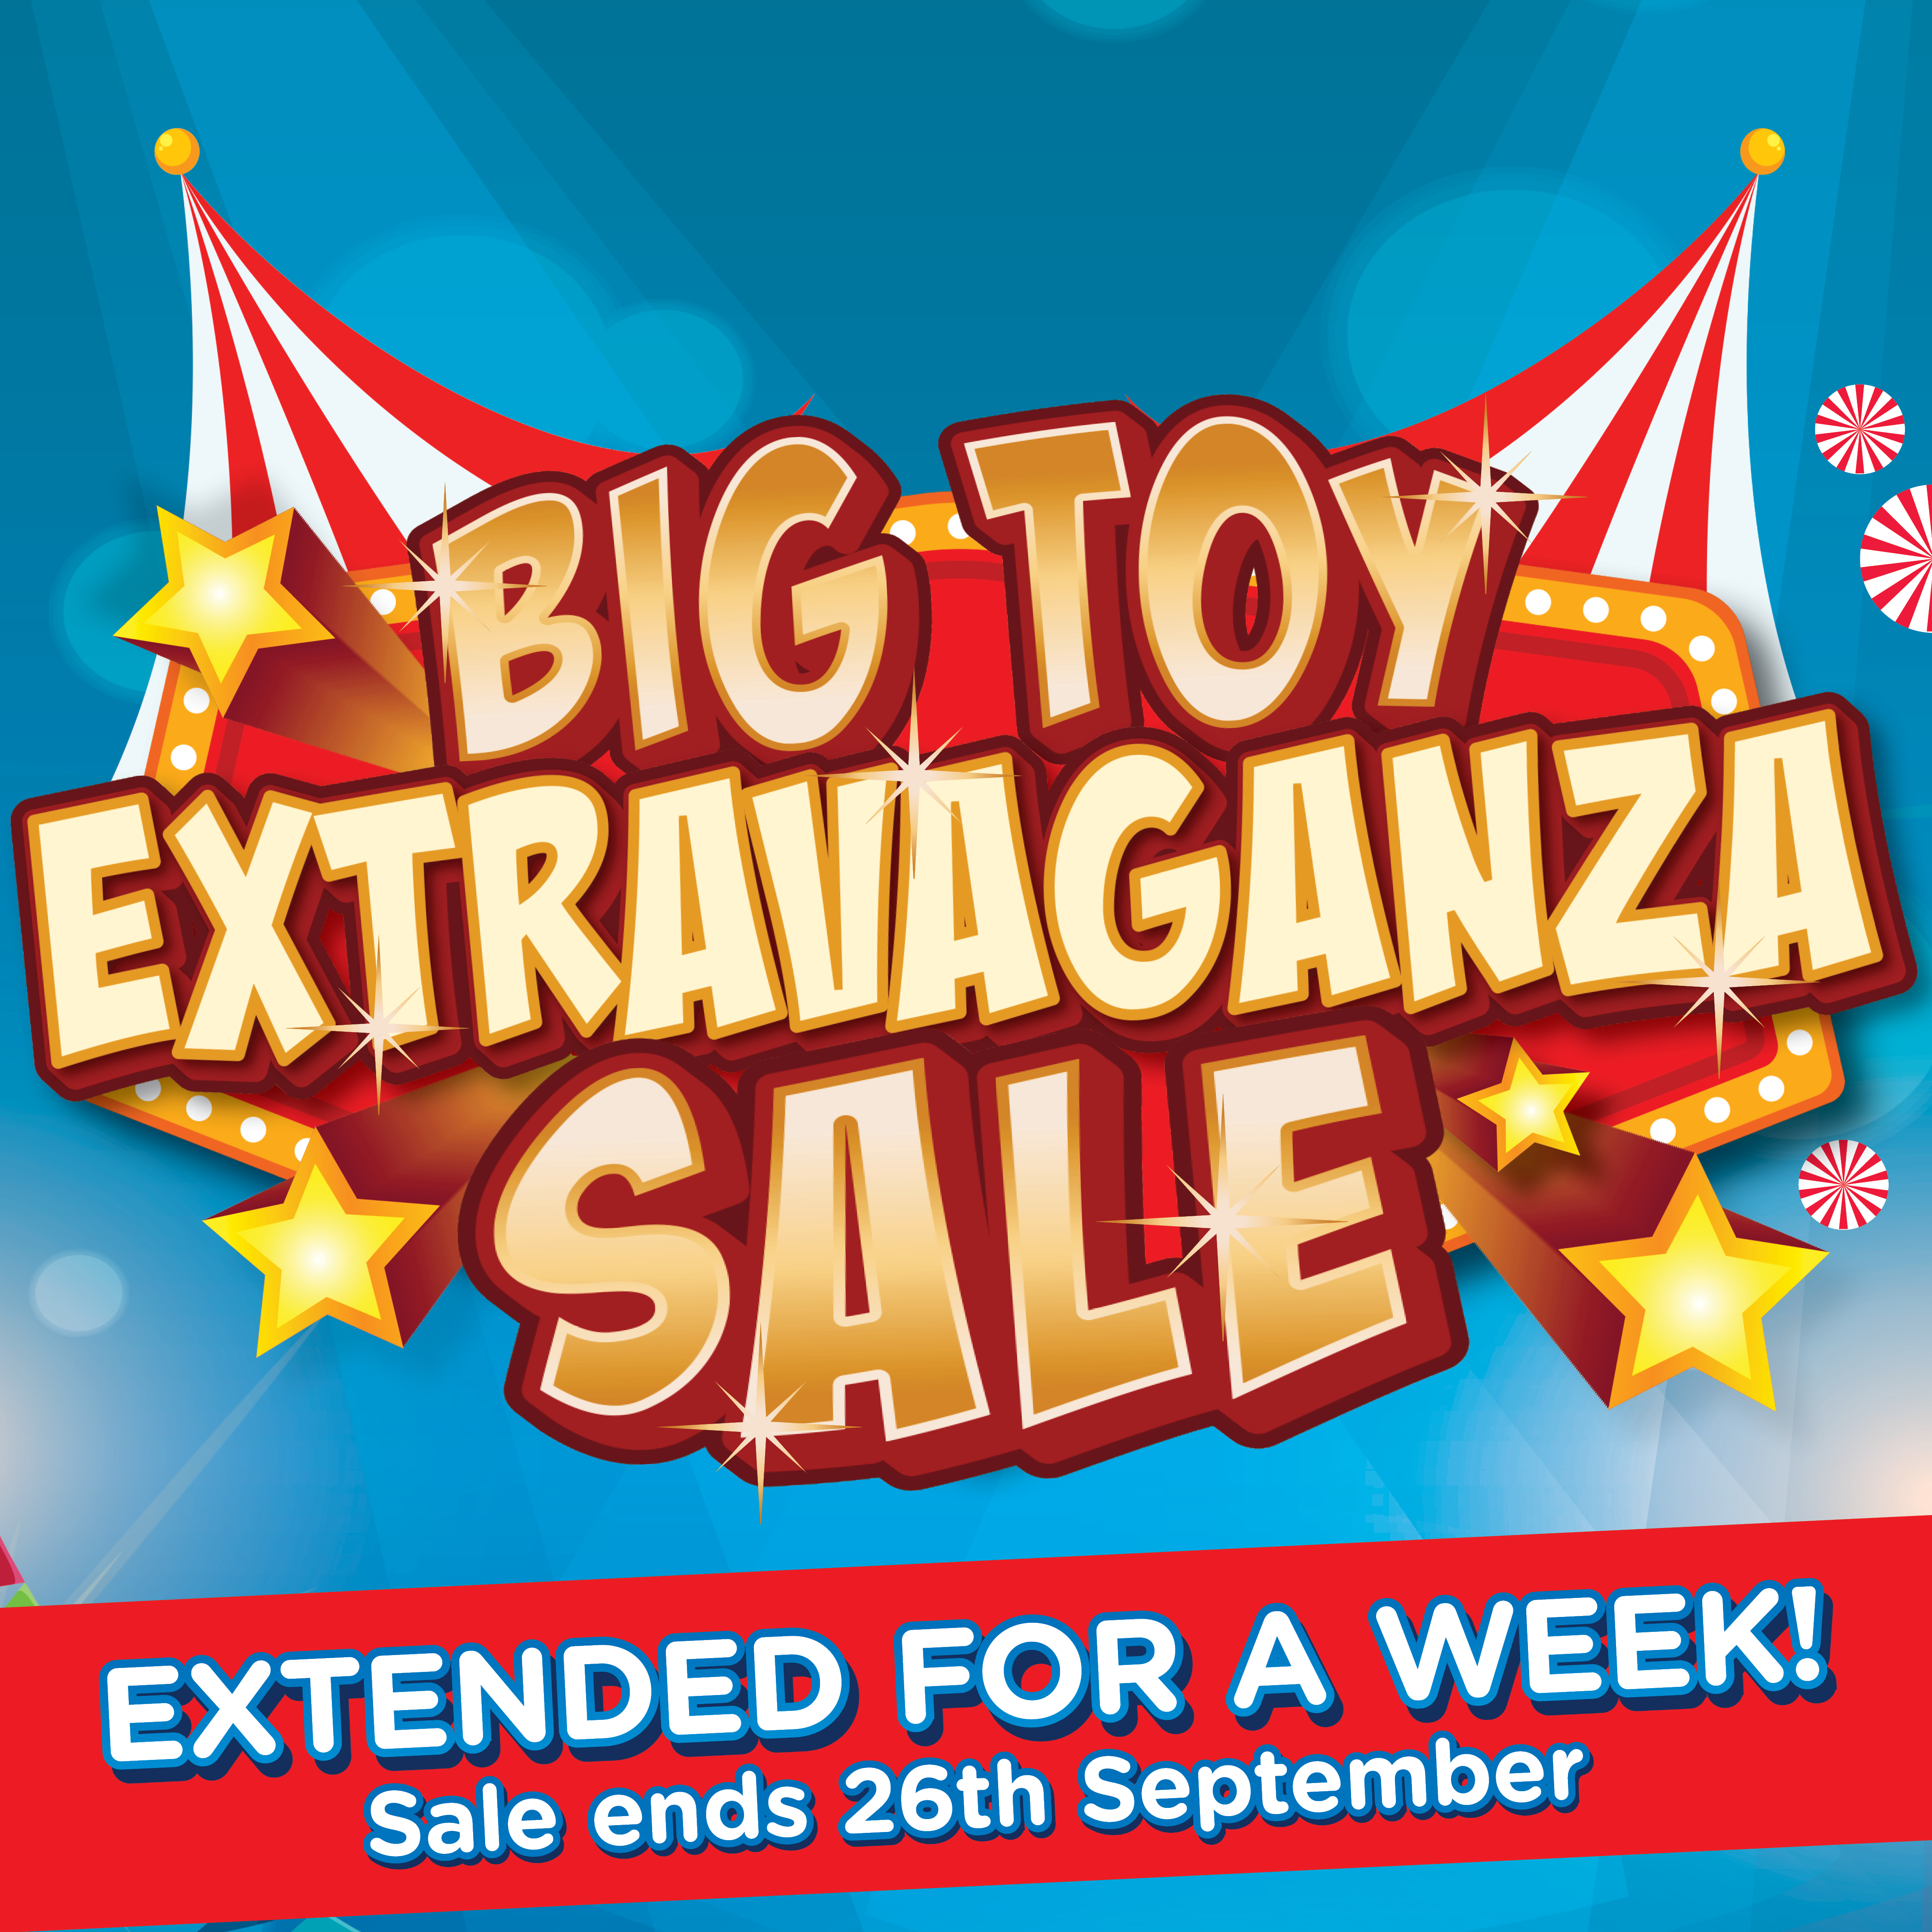 https://cdn.accentuate.io/57951617156/1602218171037/TW21_006-Big-Toy-Extravaganza-EXTENDED.png?v=1631059754728